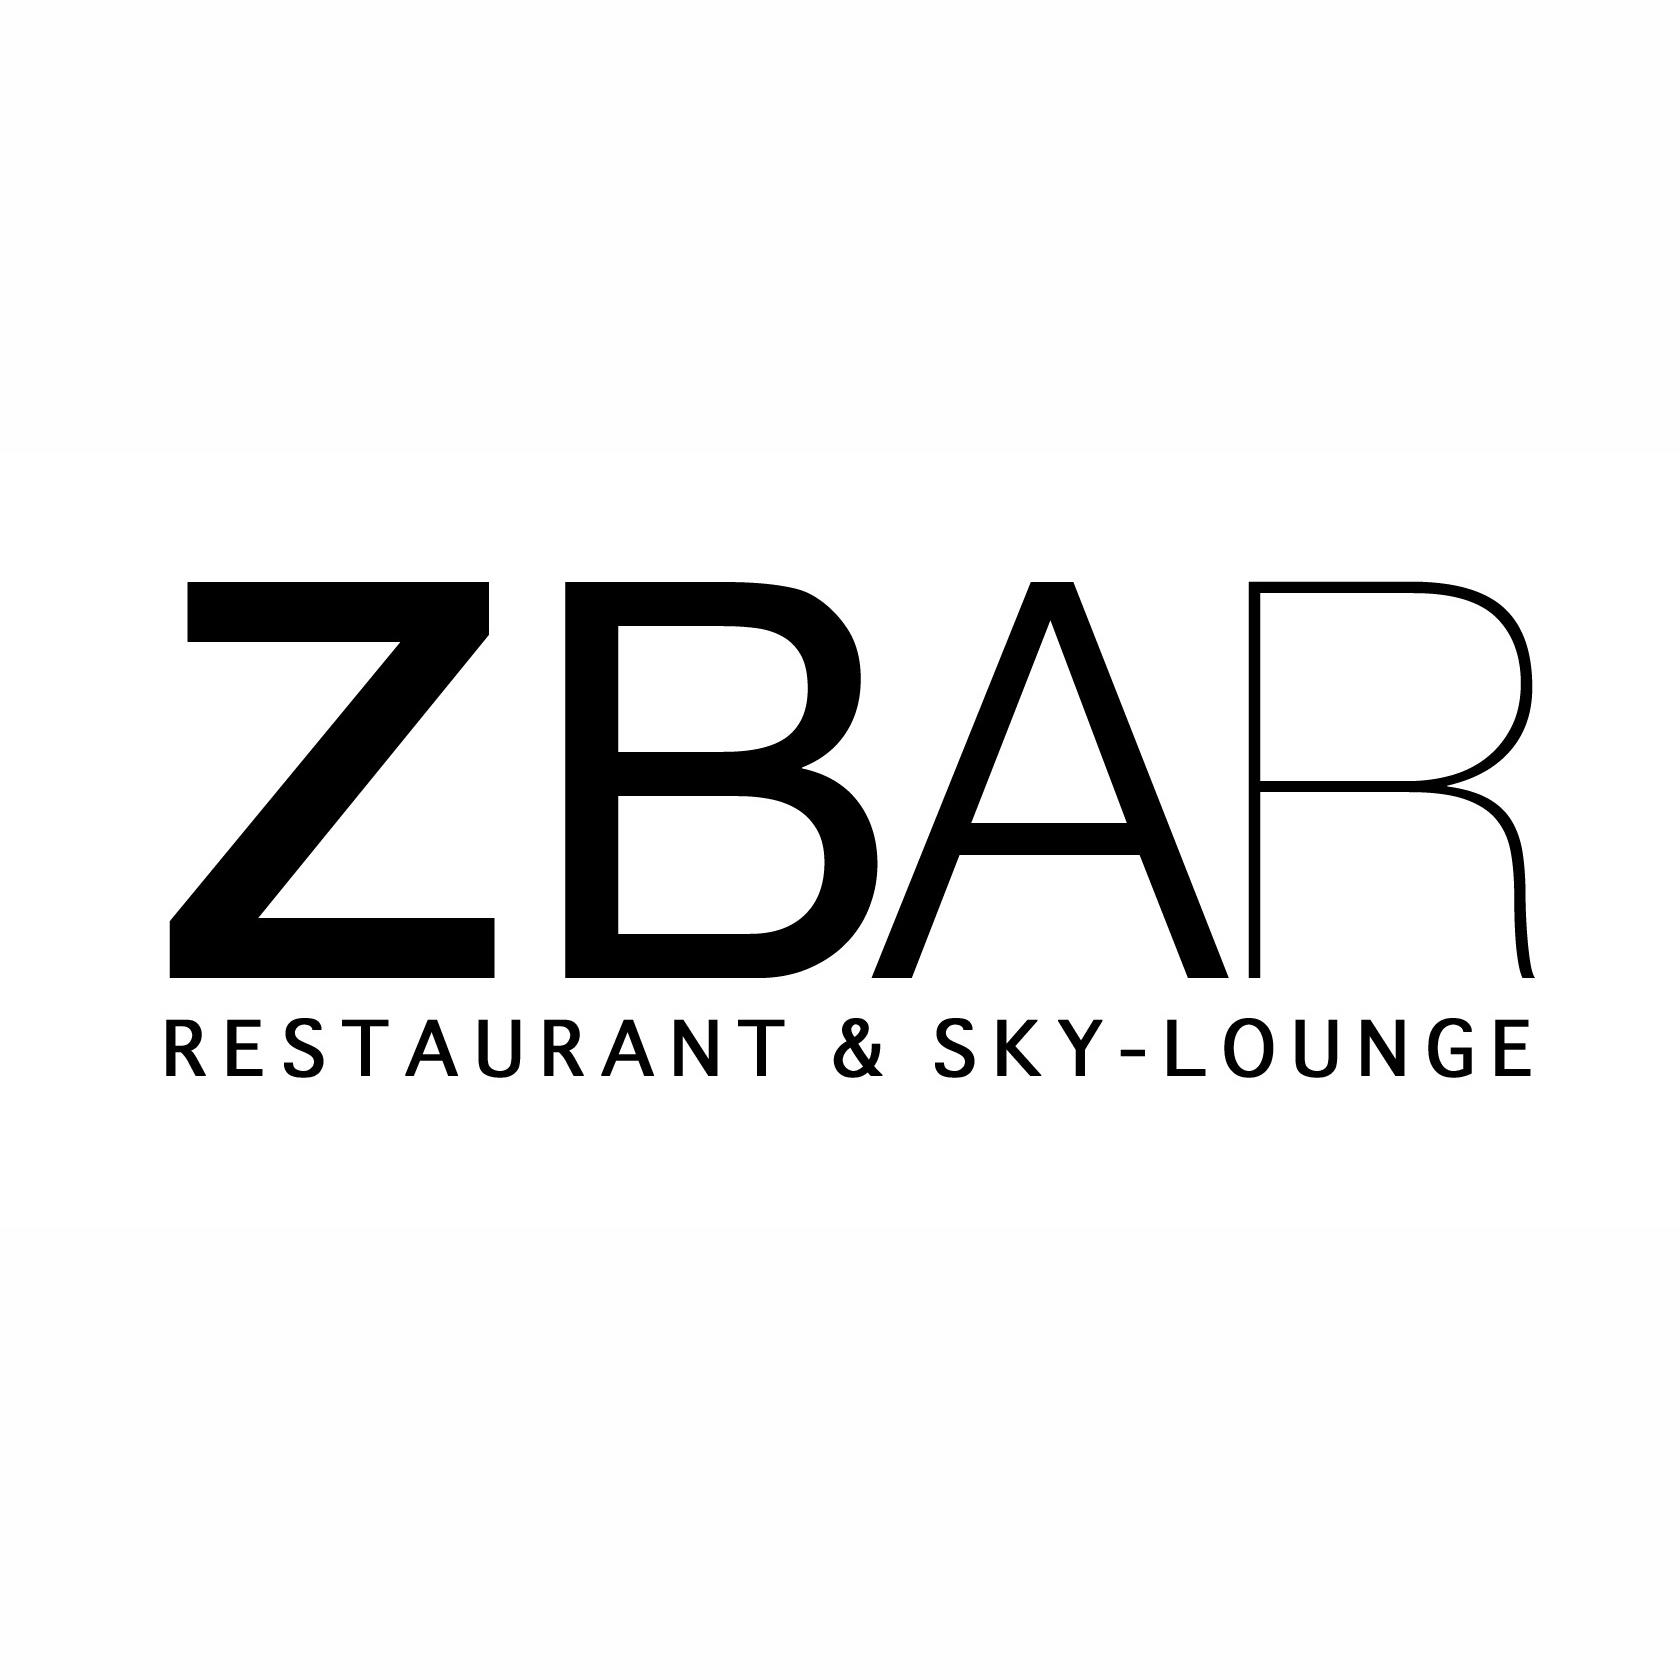 Z BAR Restaurant & Sky-Lounge